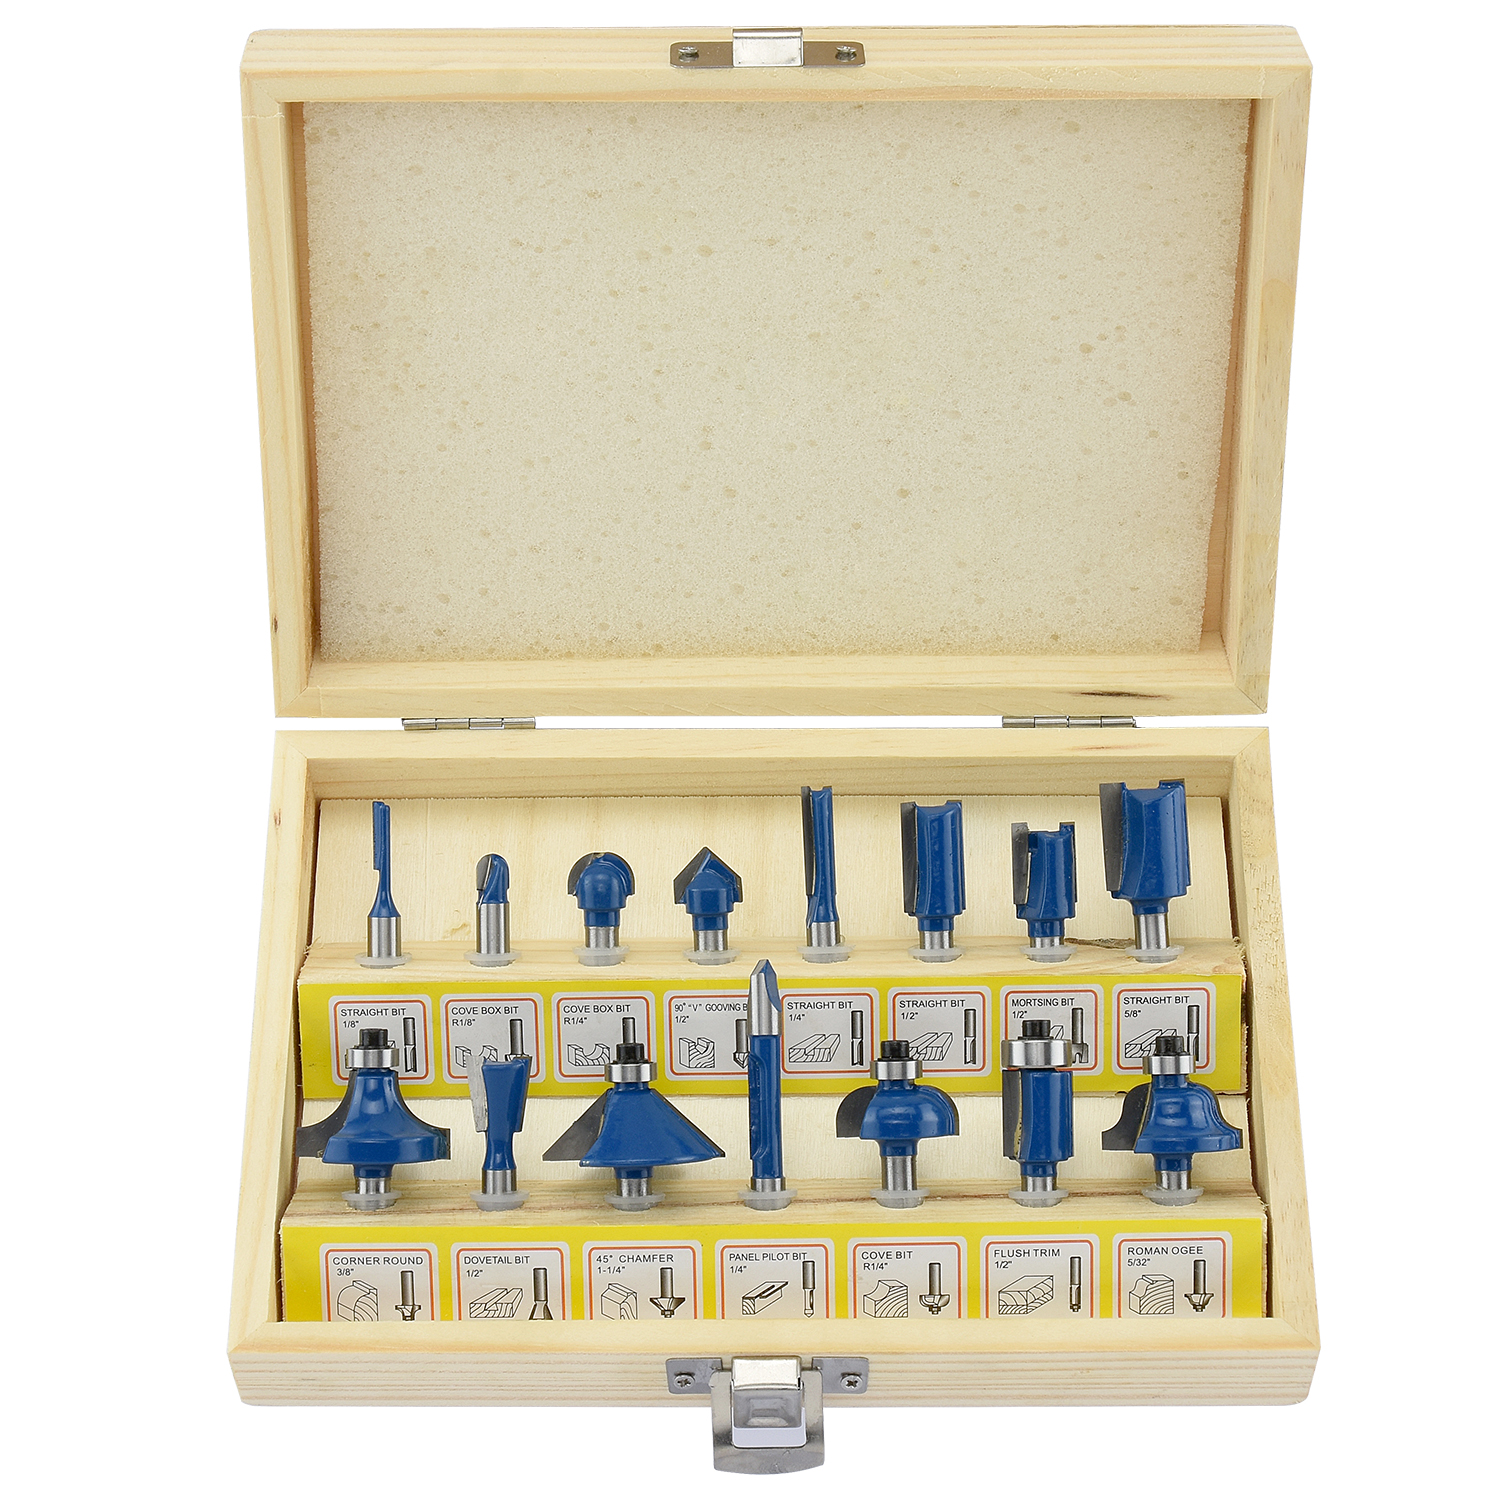 Hiltex 10100 15-Piece Tungsten Carbide Router Bit Set by Hiltex